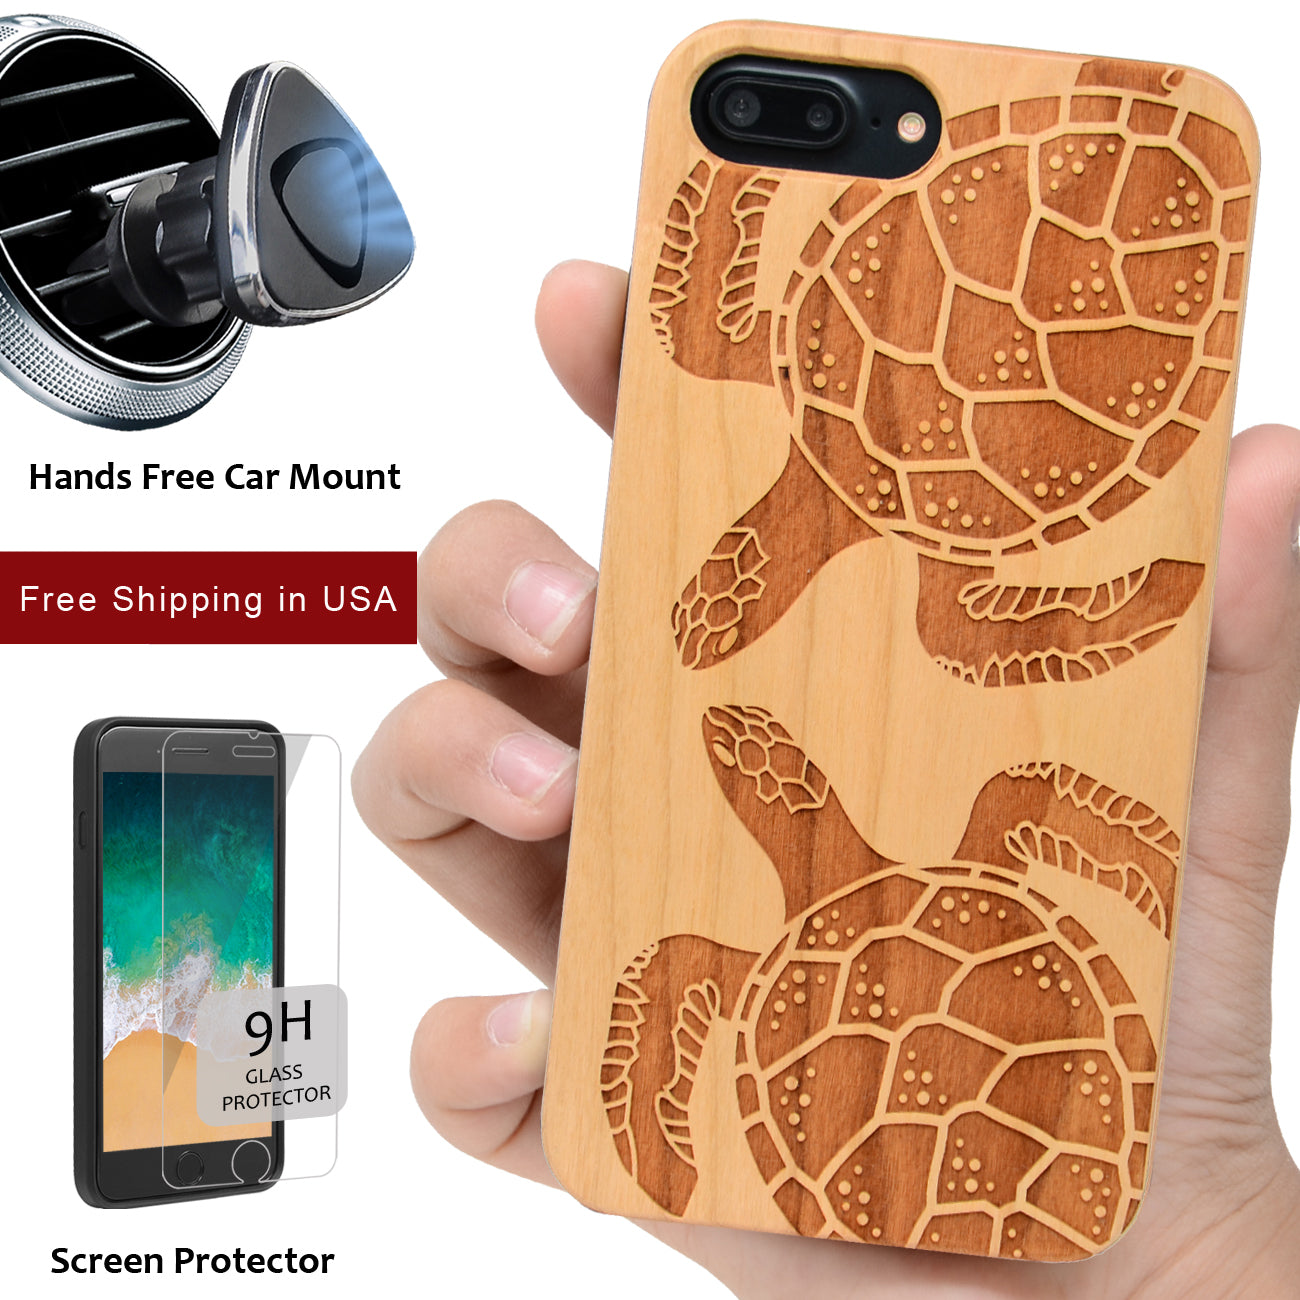 Sea Turtles Phone Case offers Screen Protector or Magnetic Car Mount - iProductsUS